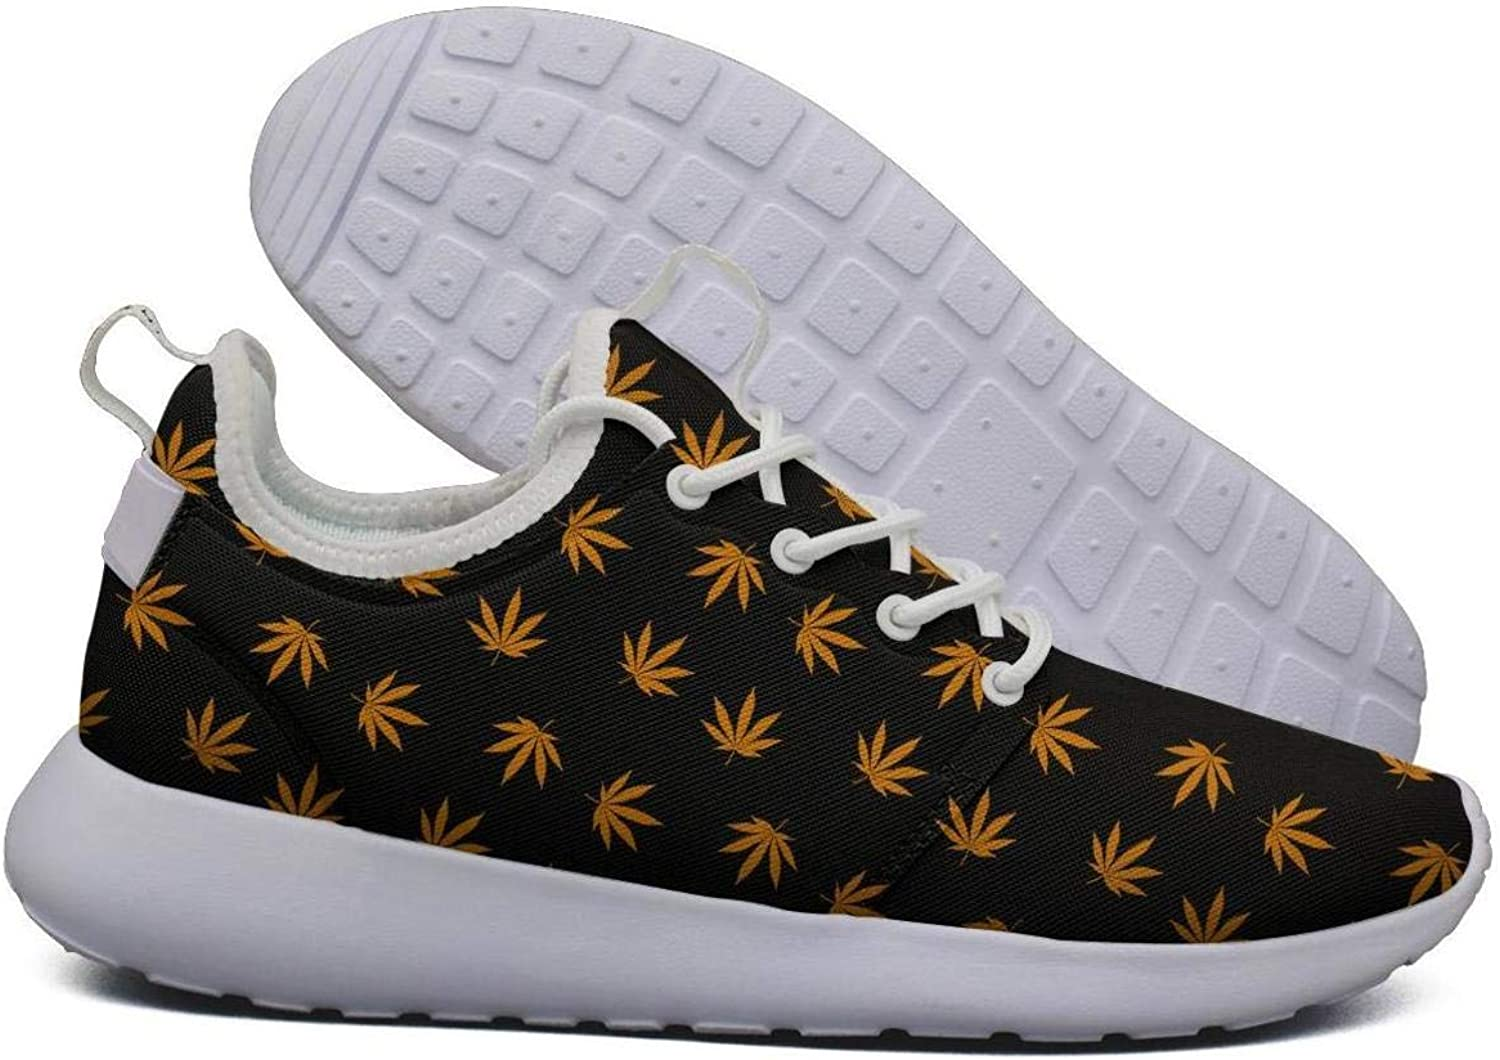 Hoohle Sports Womens Cannabis Leaf Flex Mesh Roshe 2 Lightweight Breathable Cross-Trainer shoes